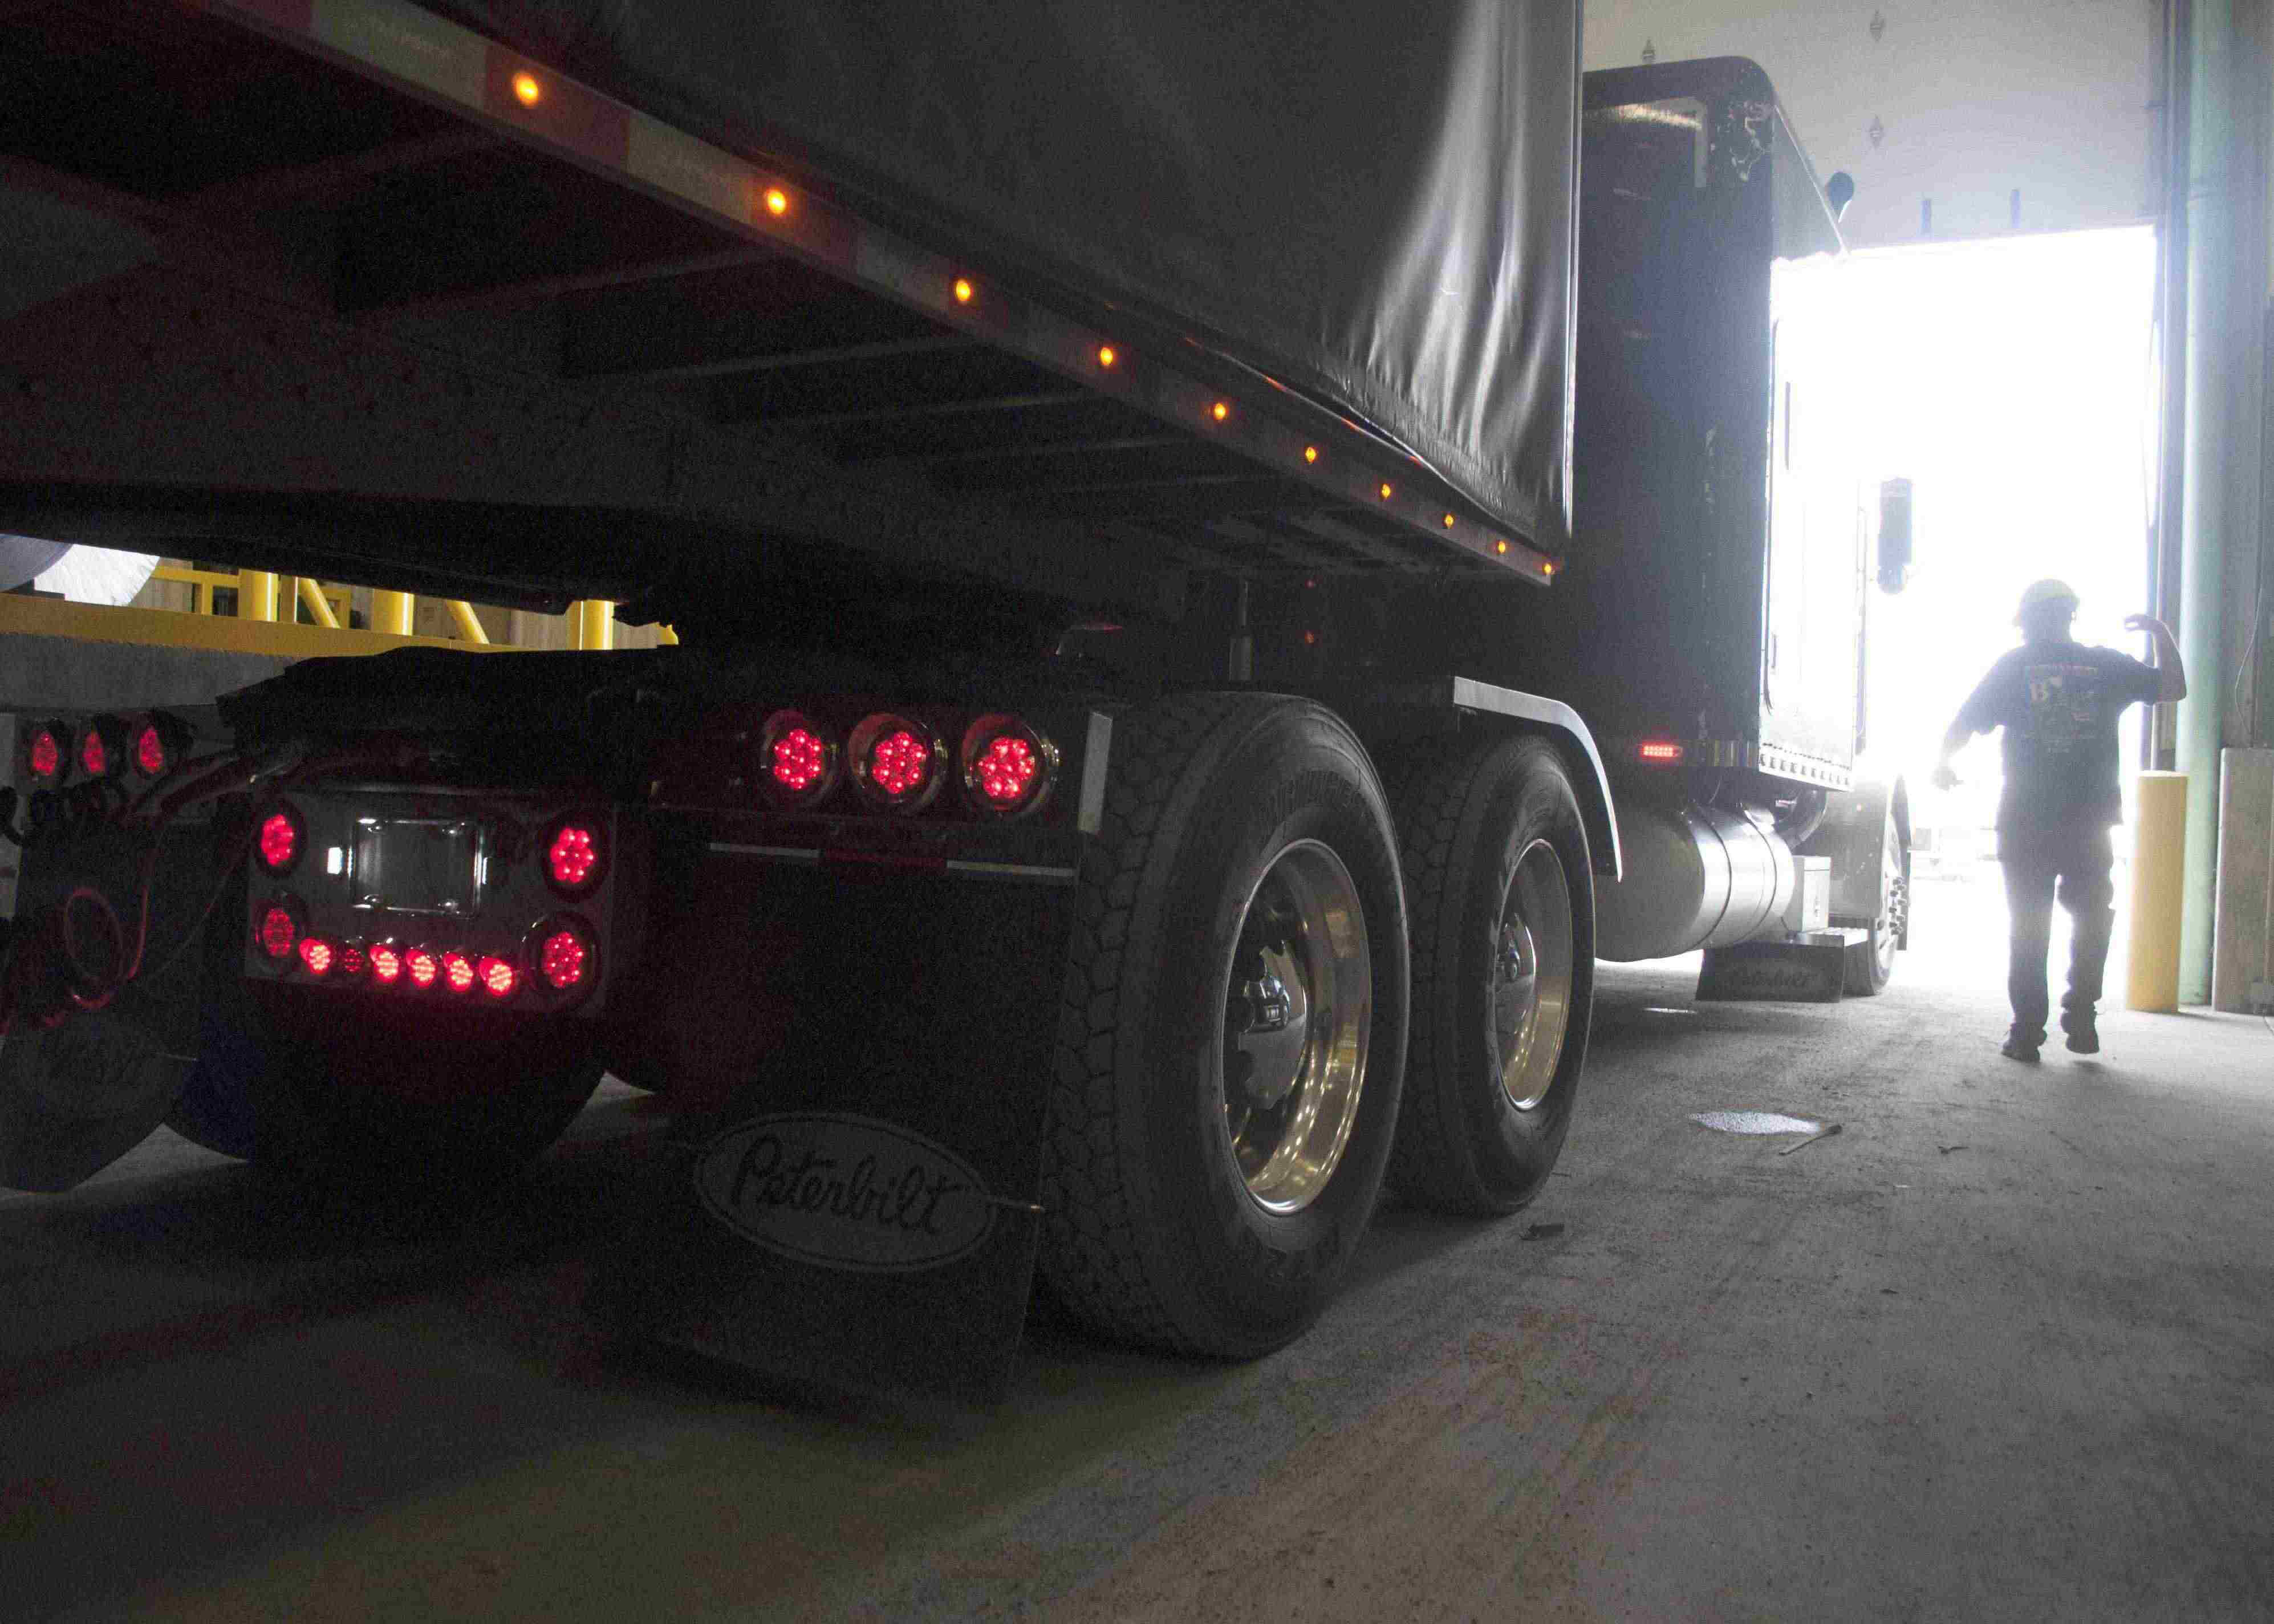 FMCSA seeks data from truckers on detention time